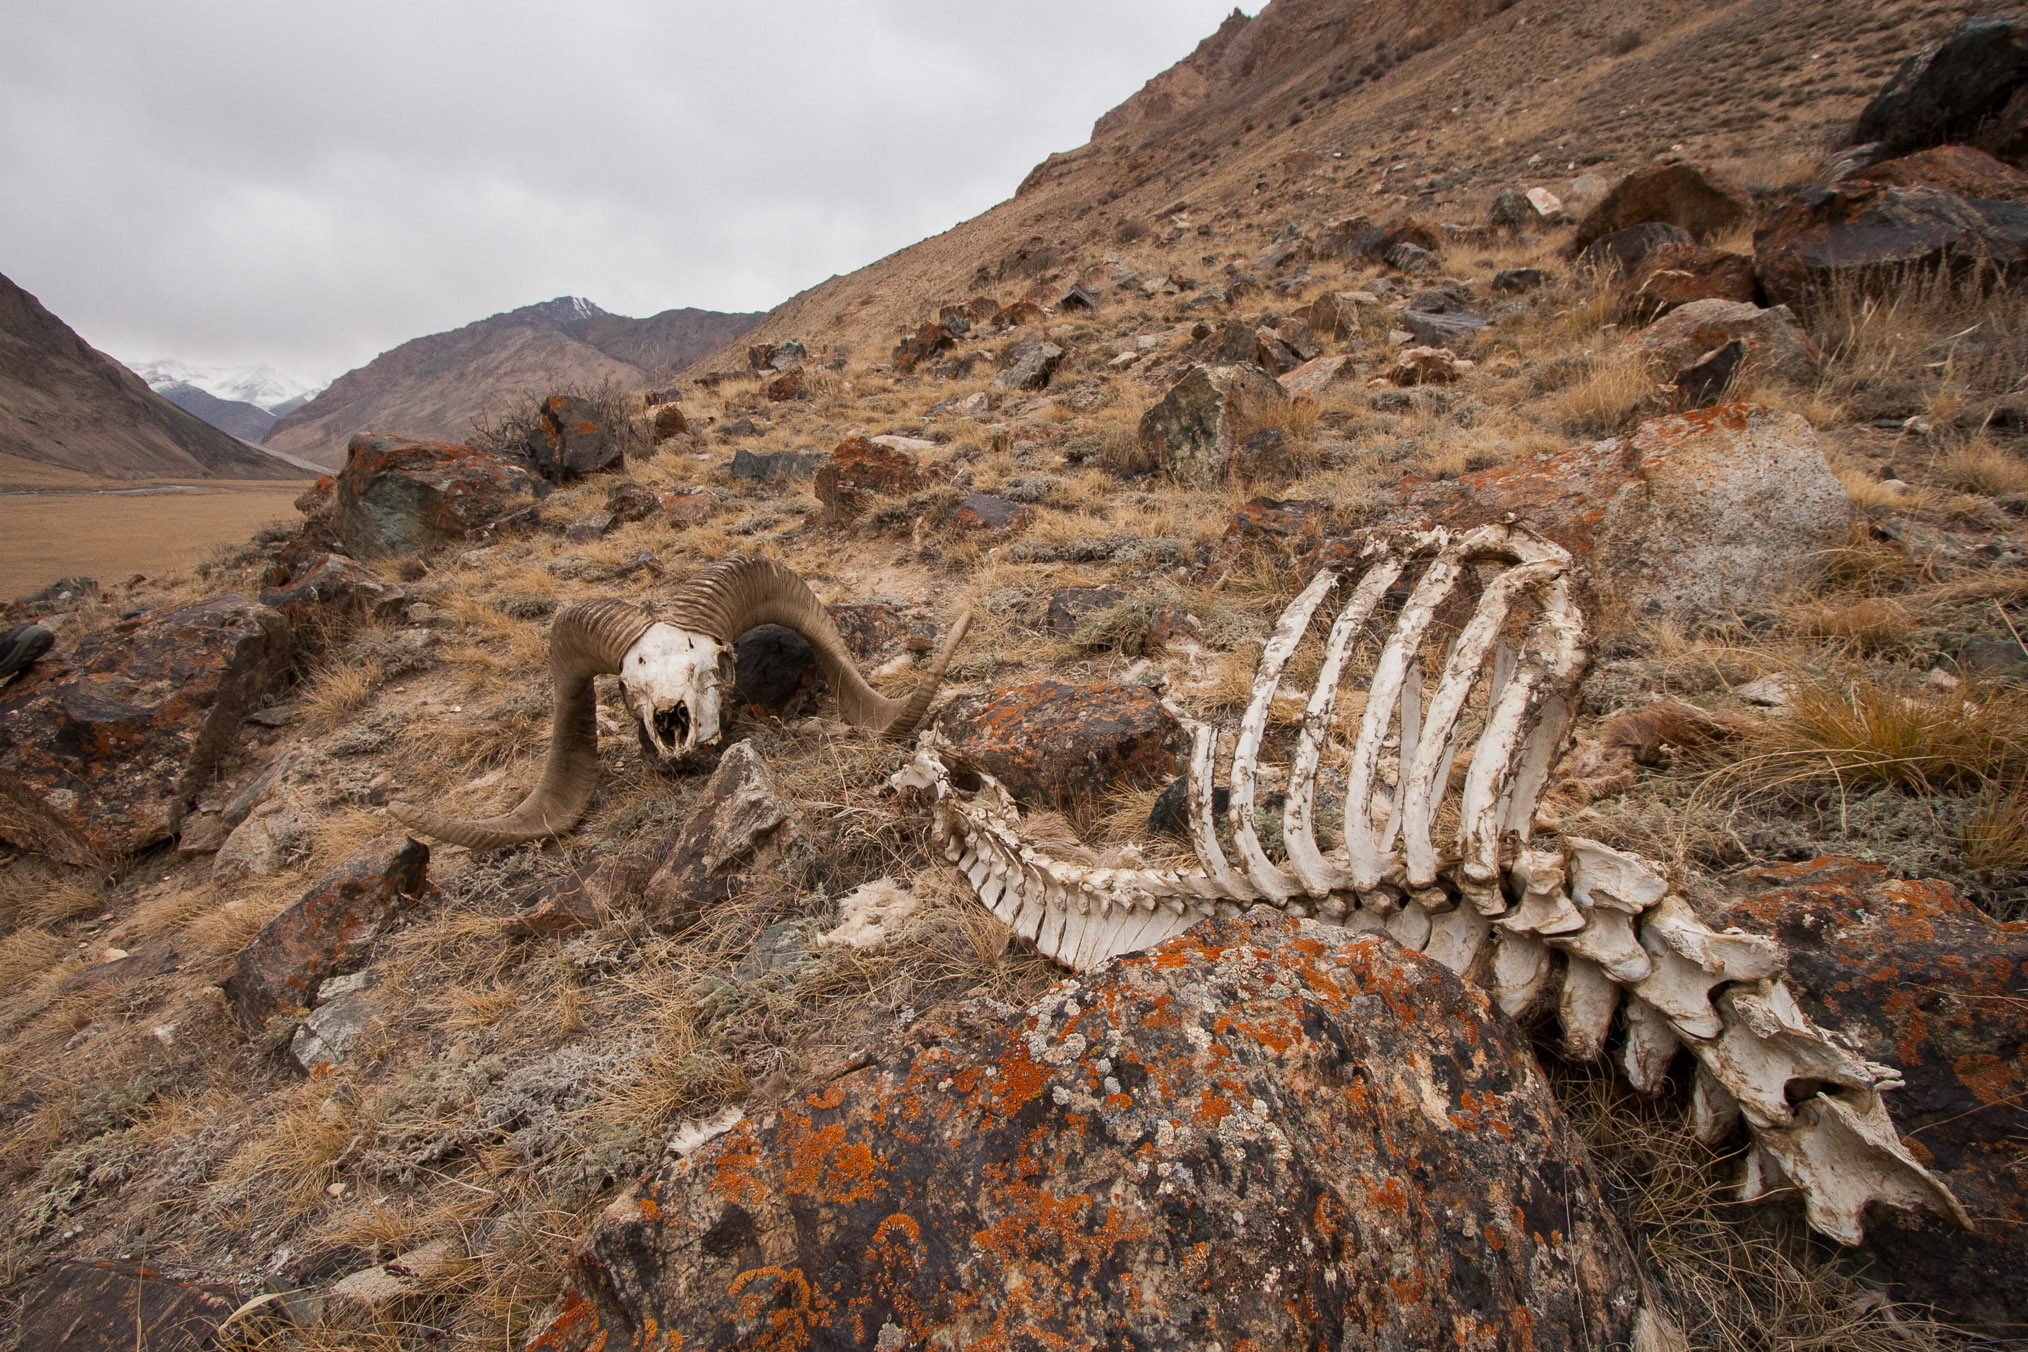 The skeleton and skull of a male argali (Ovis ammon), all that remains of a previous snow leopard (Panthera uncia) kill in the Sarychat-Ertash Strict Nature Reserve, Tien Shan Mountains, eastern Kyrgyzstan. Photograph by Sebastian Kennerknecht